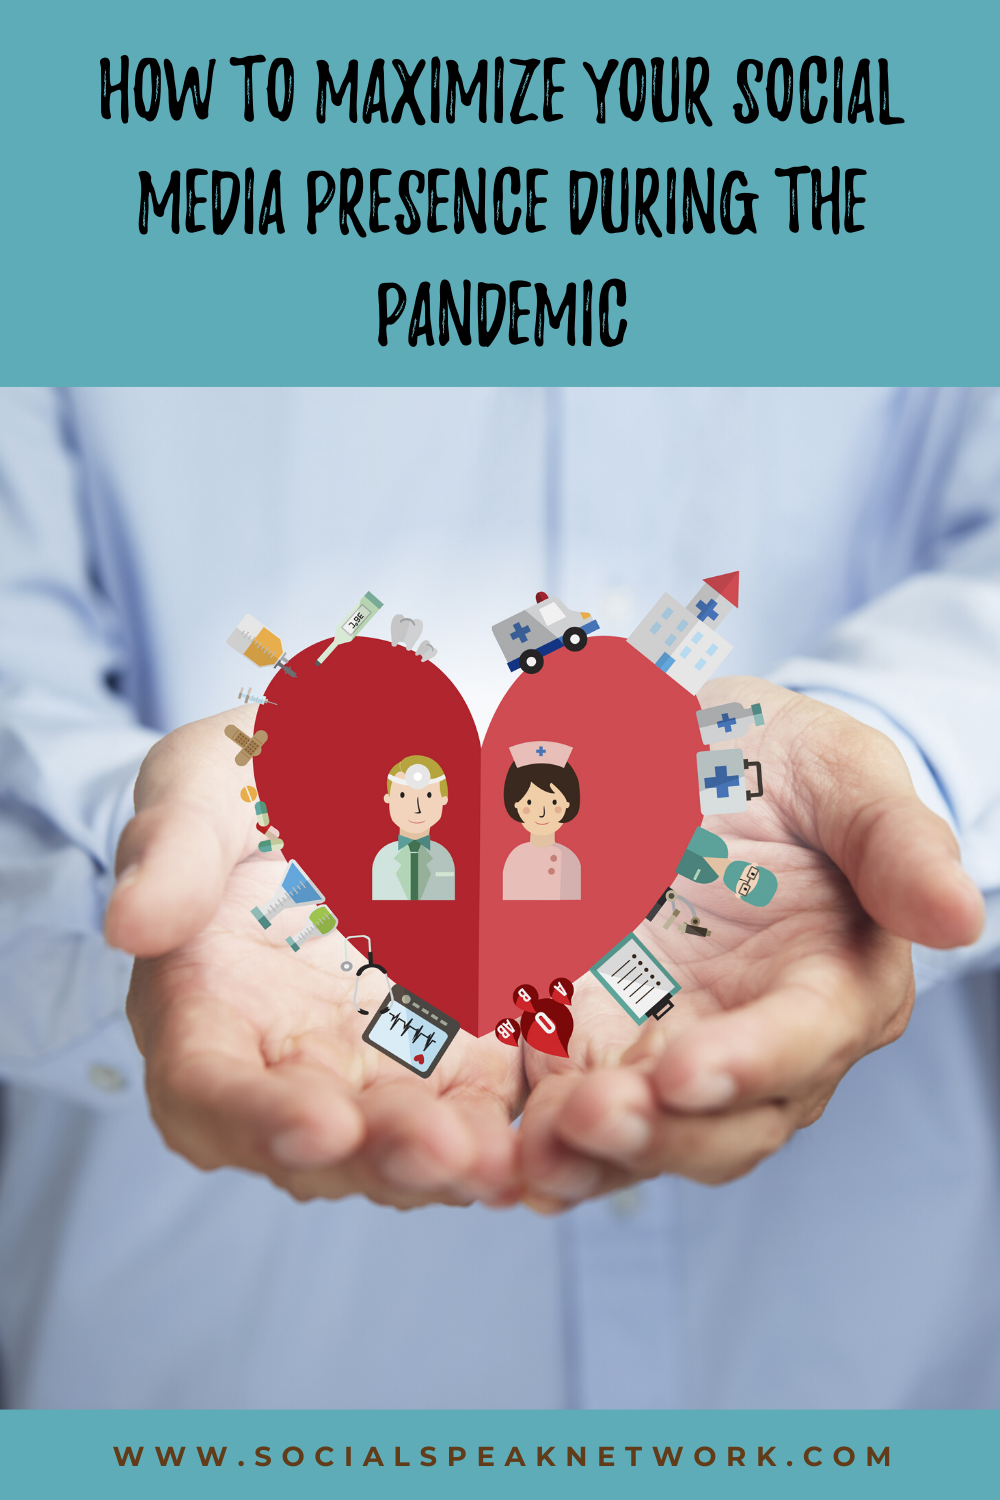 How to Maximize Your Social Media Presence During the Pandemic